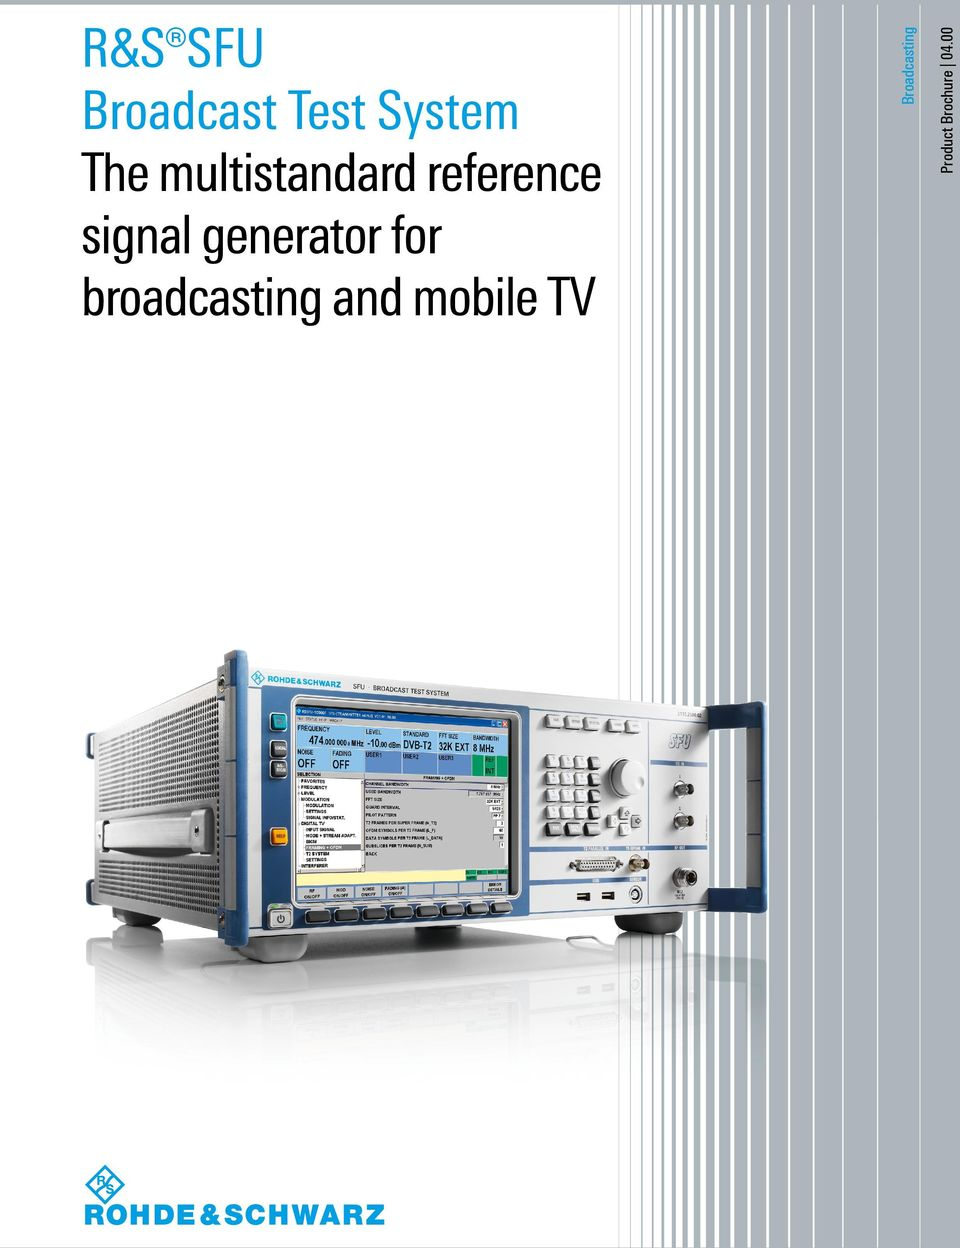 The multistandard reference signal